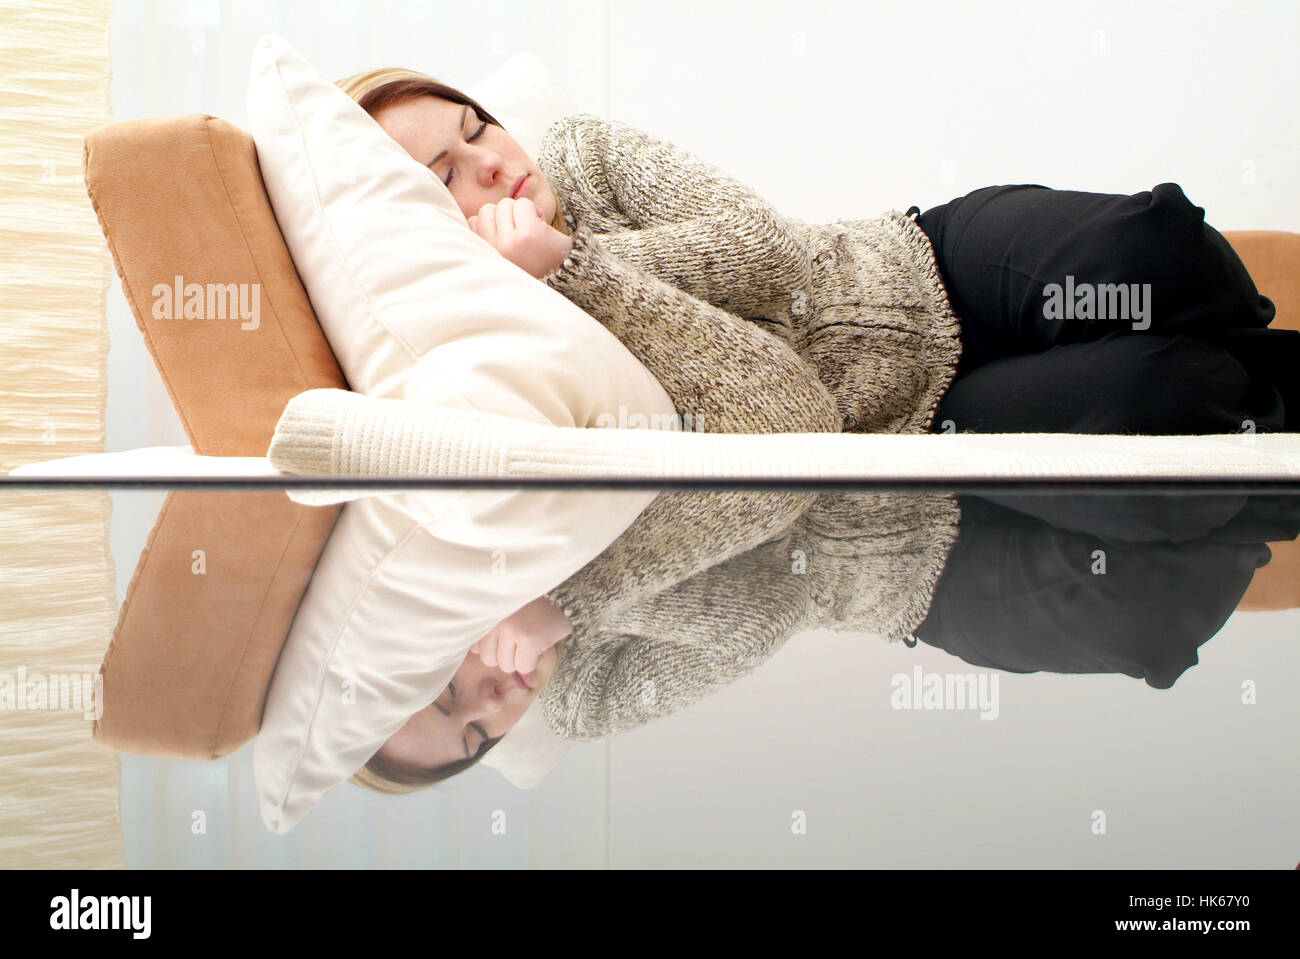 Young woman relaxing on couch - Stock Image